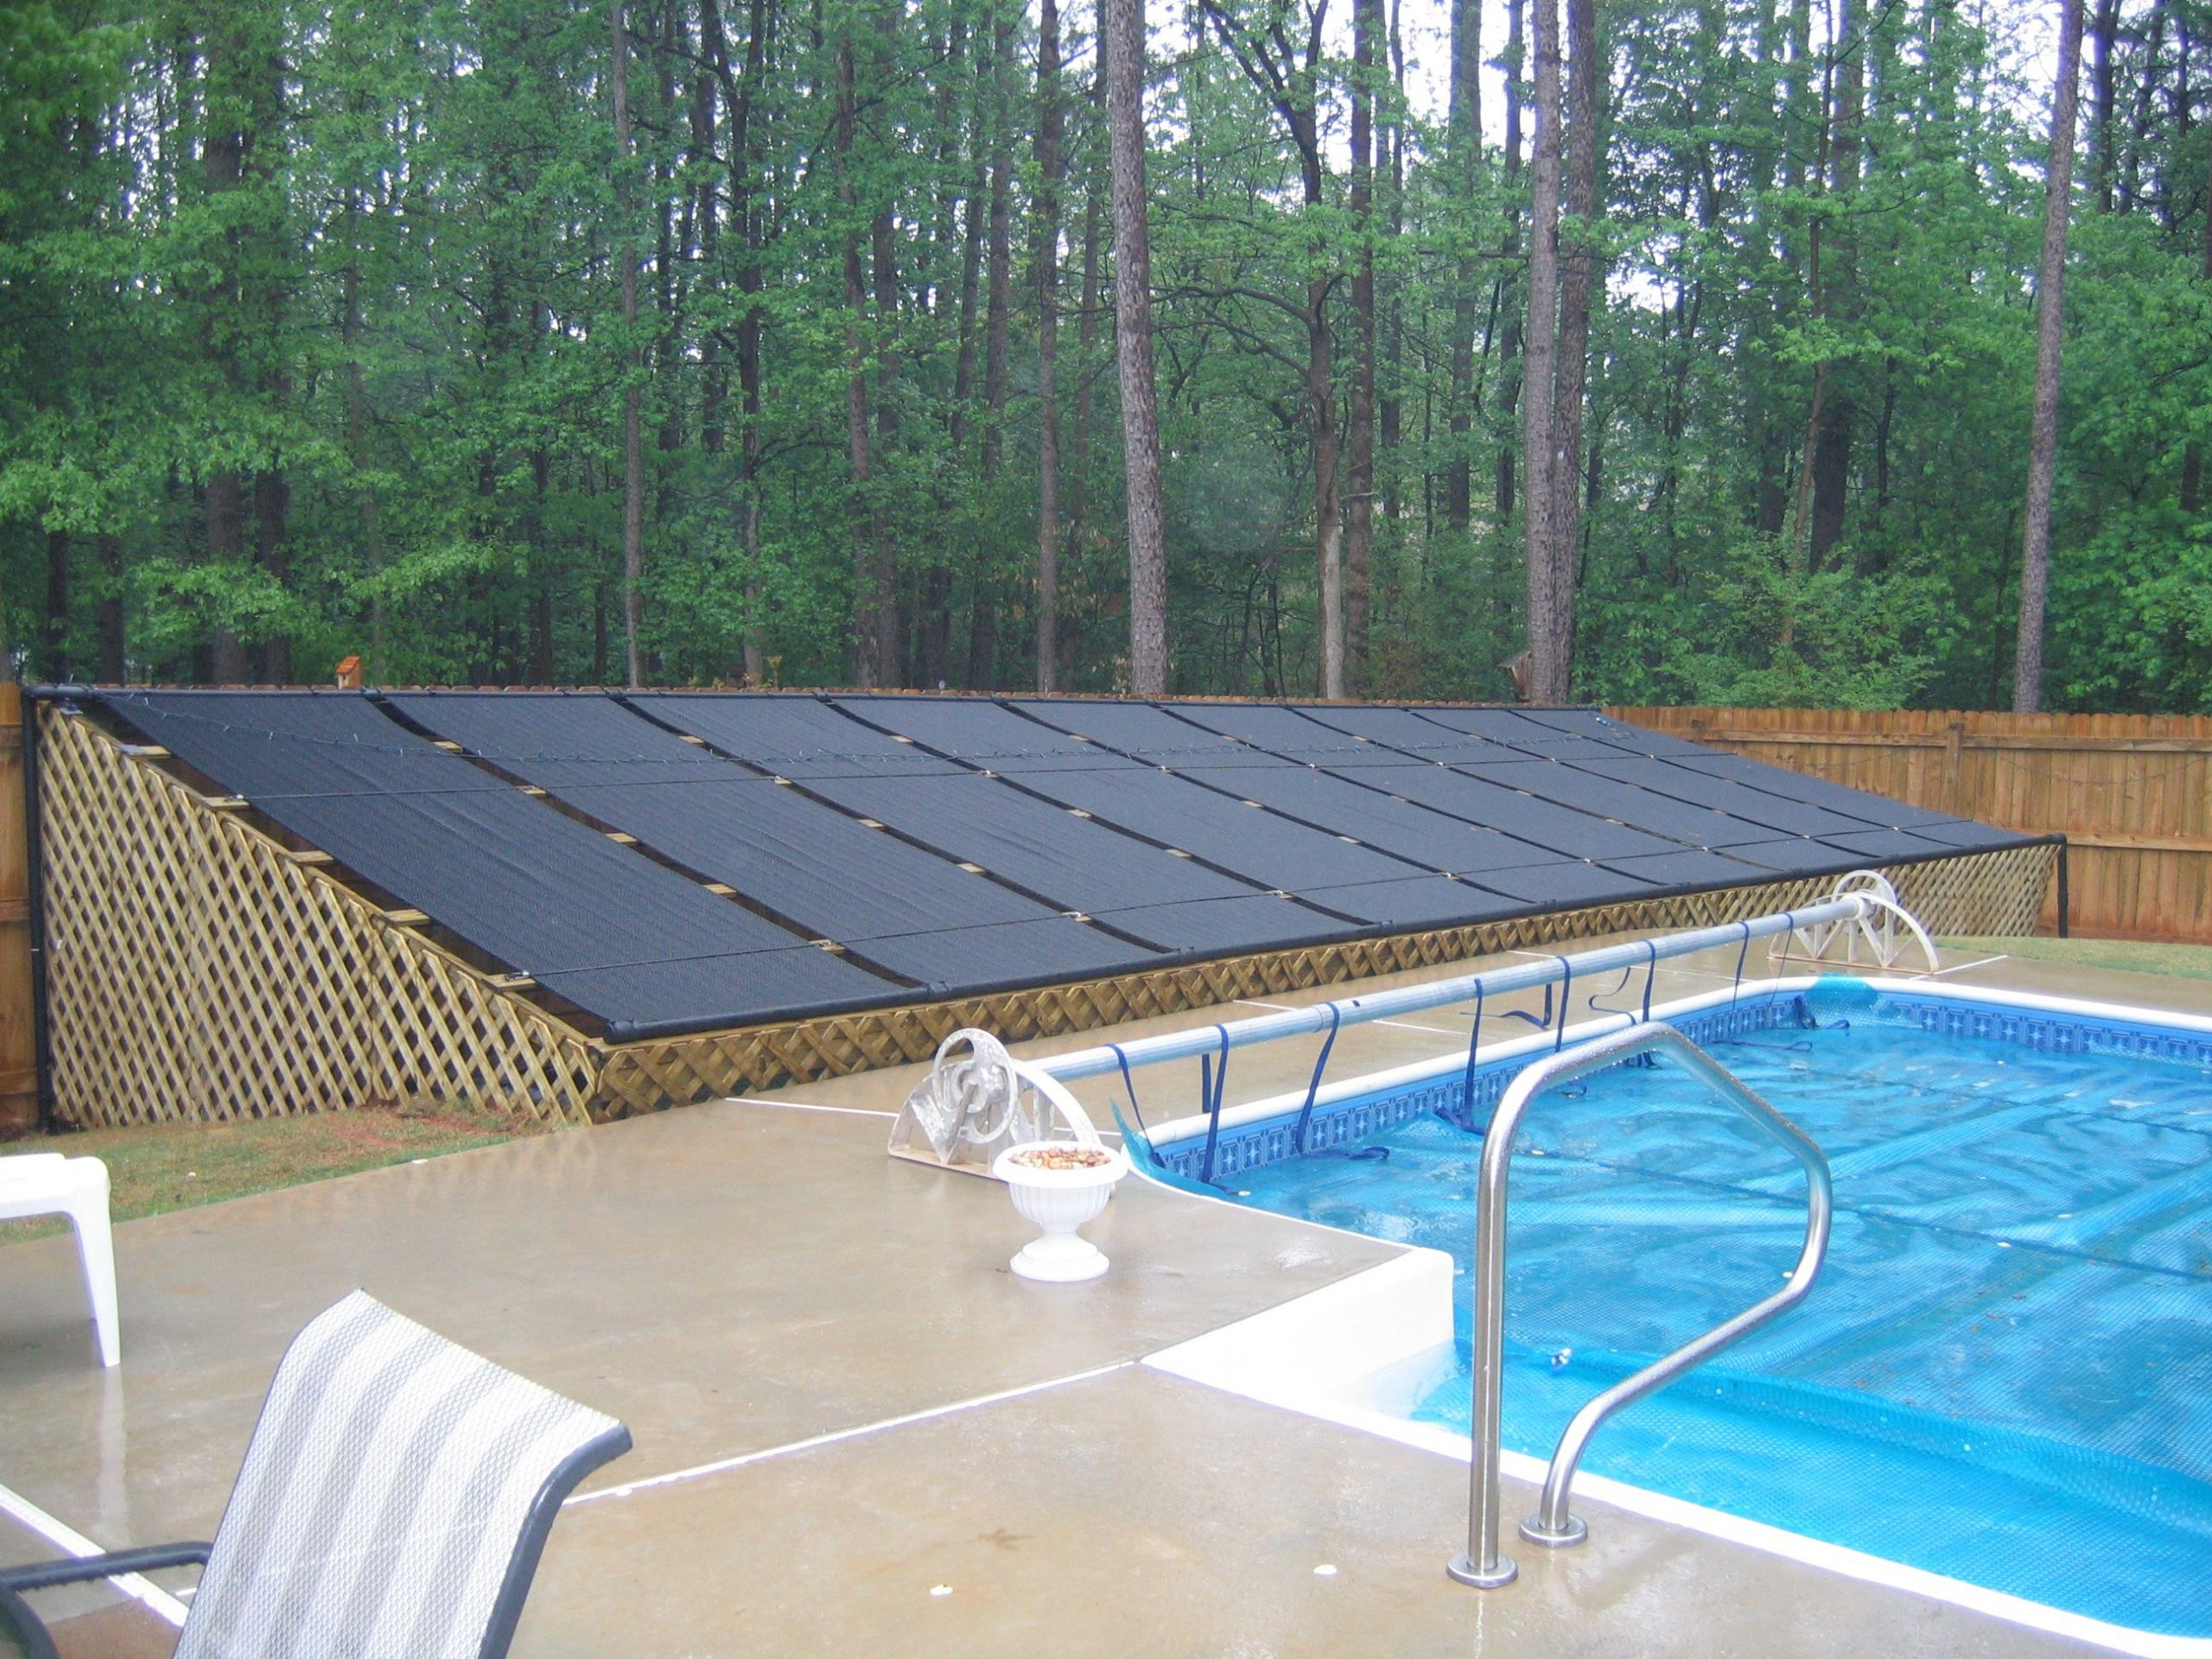 Build Your Own Solar Pool Heater For Under $100 | Piscine ... destiné Chauffe Eau Solaire Piscine